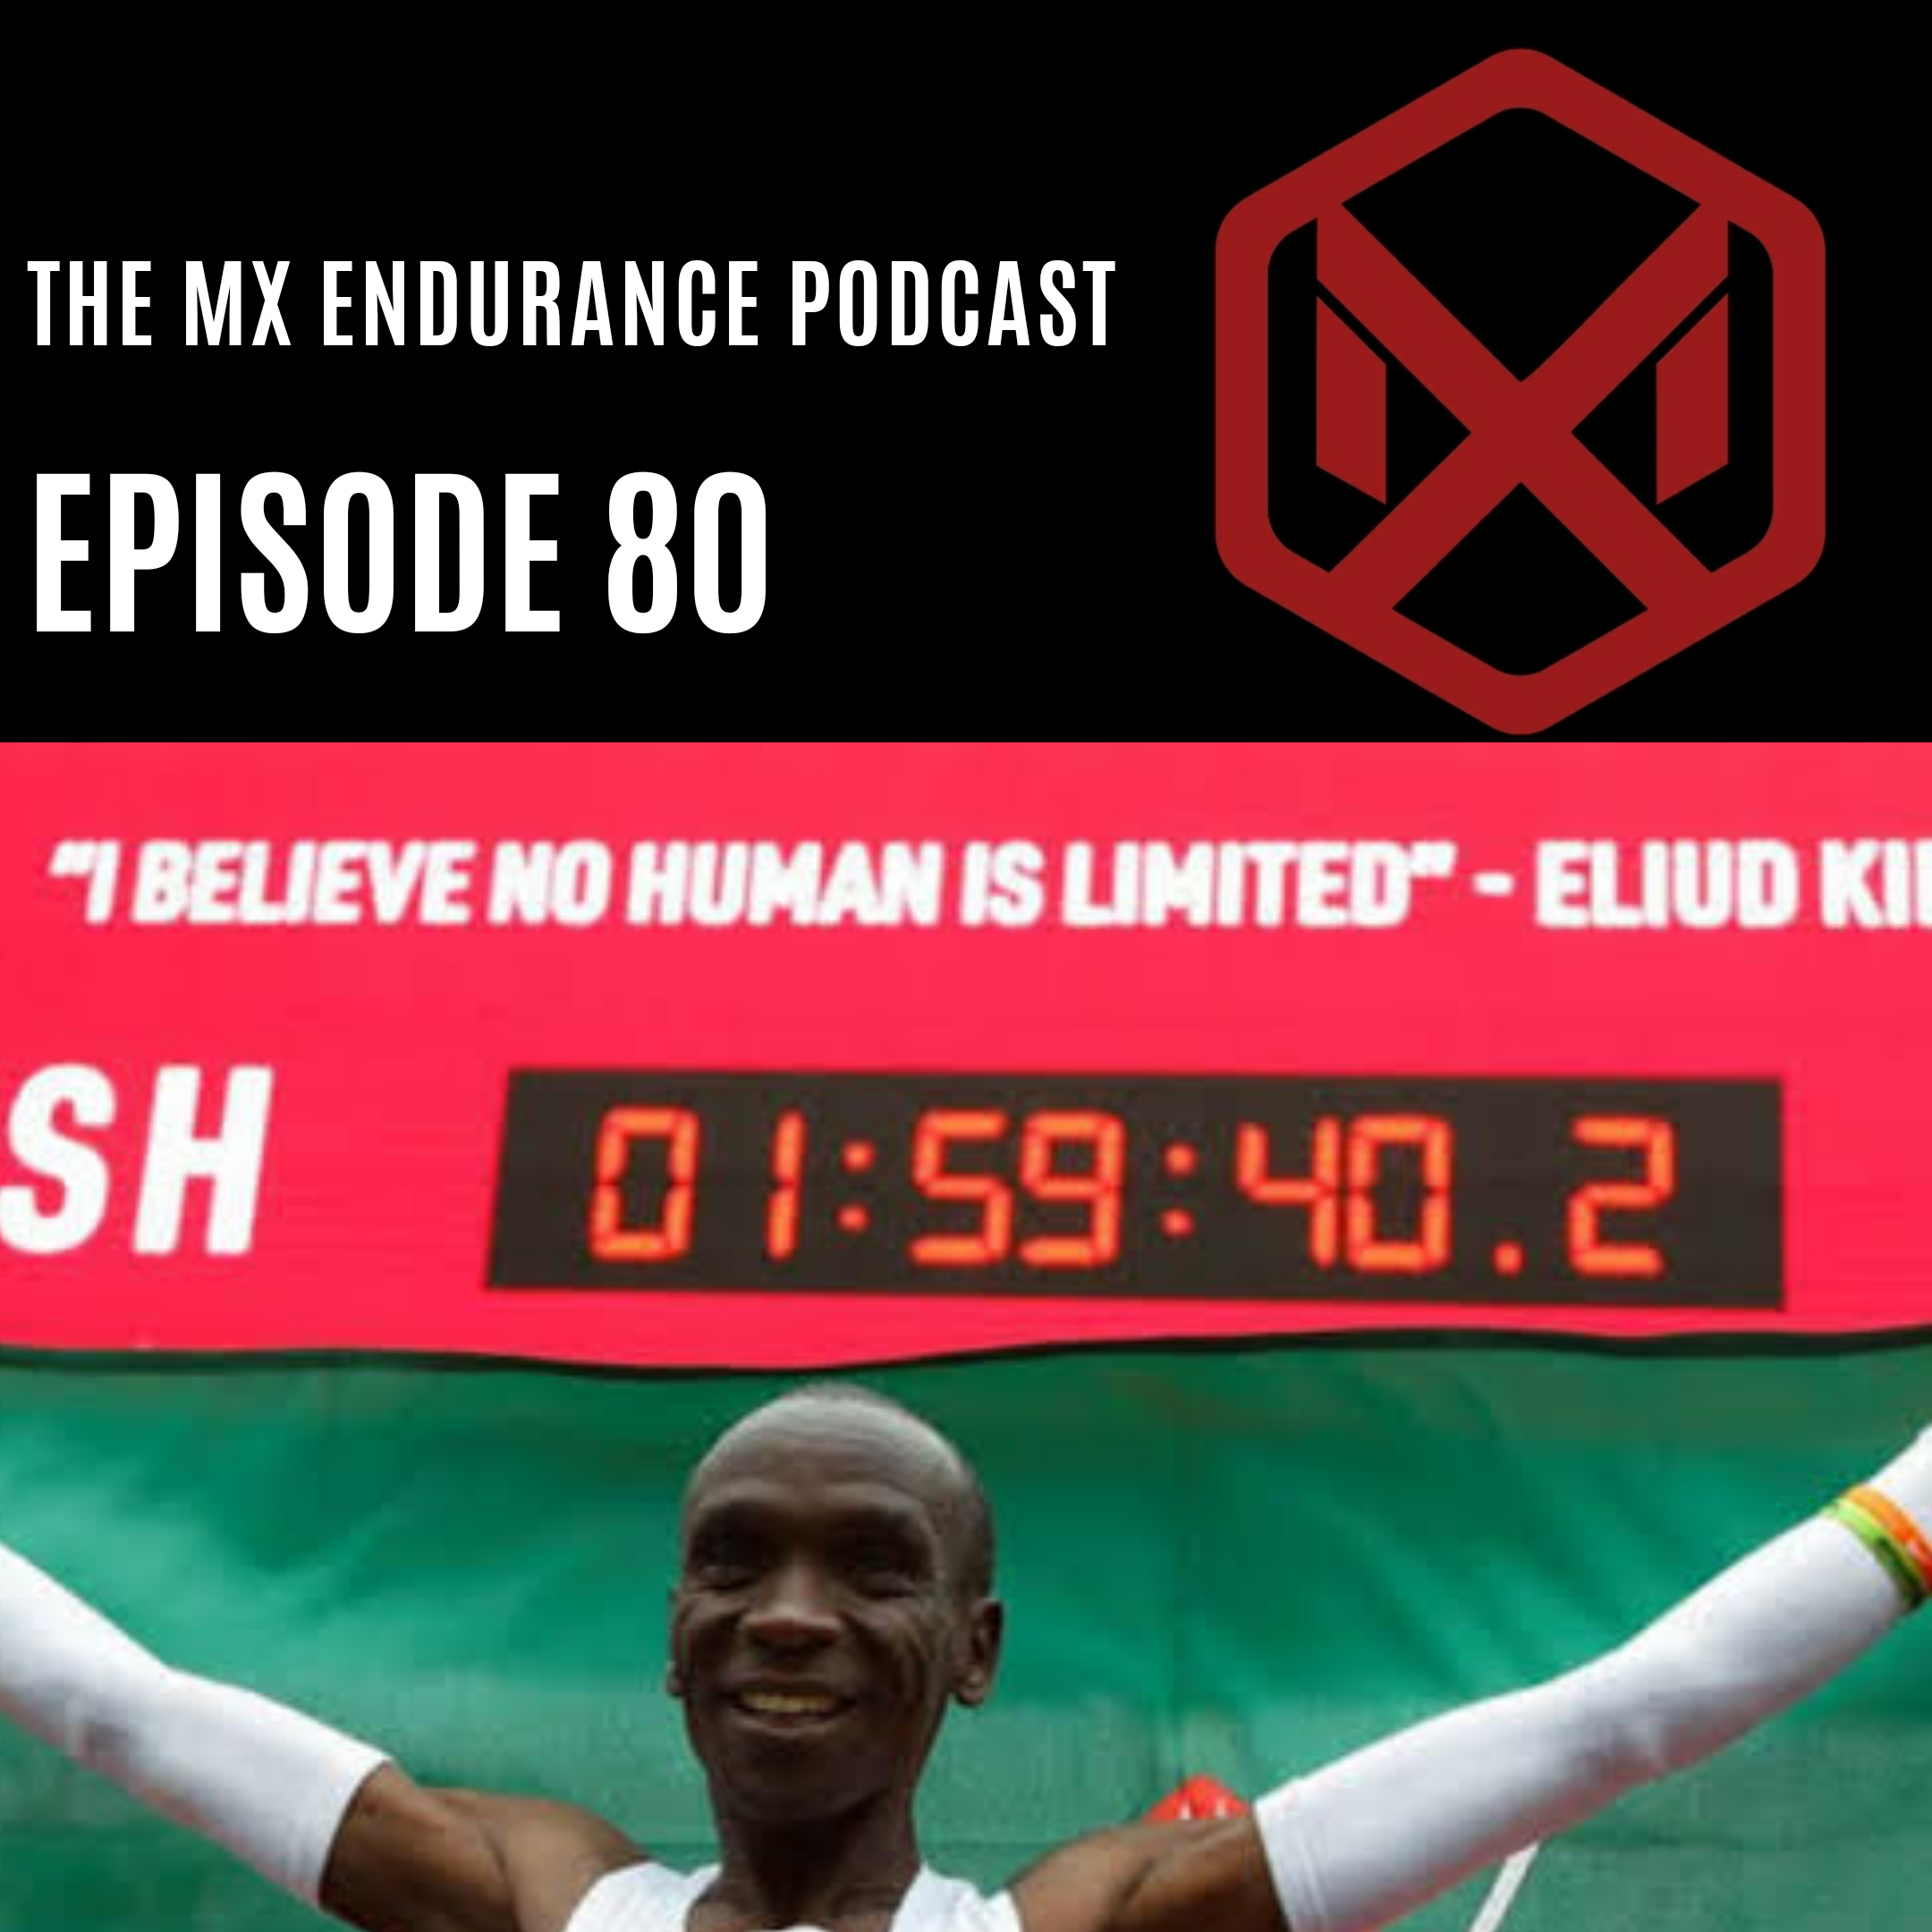 #80 - The Top 10 Endurance Sport Moments of 2019